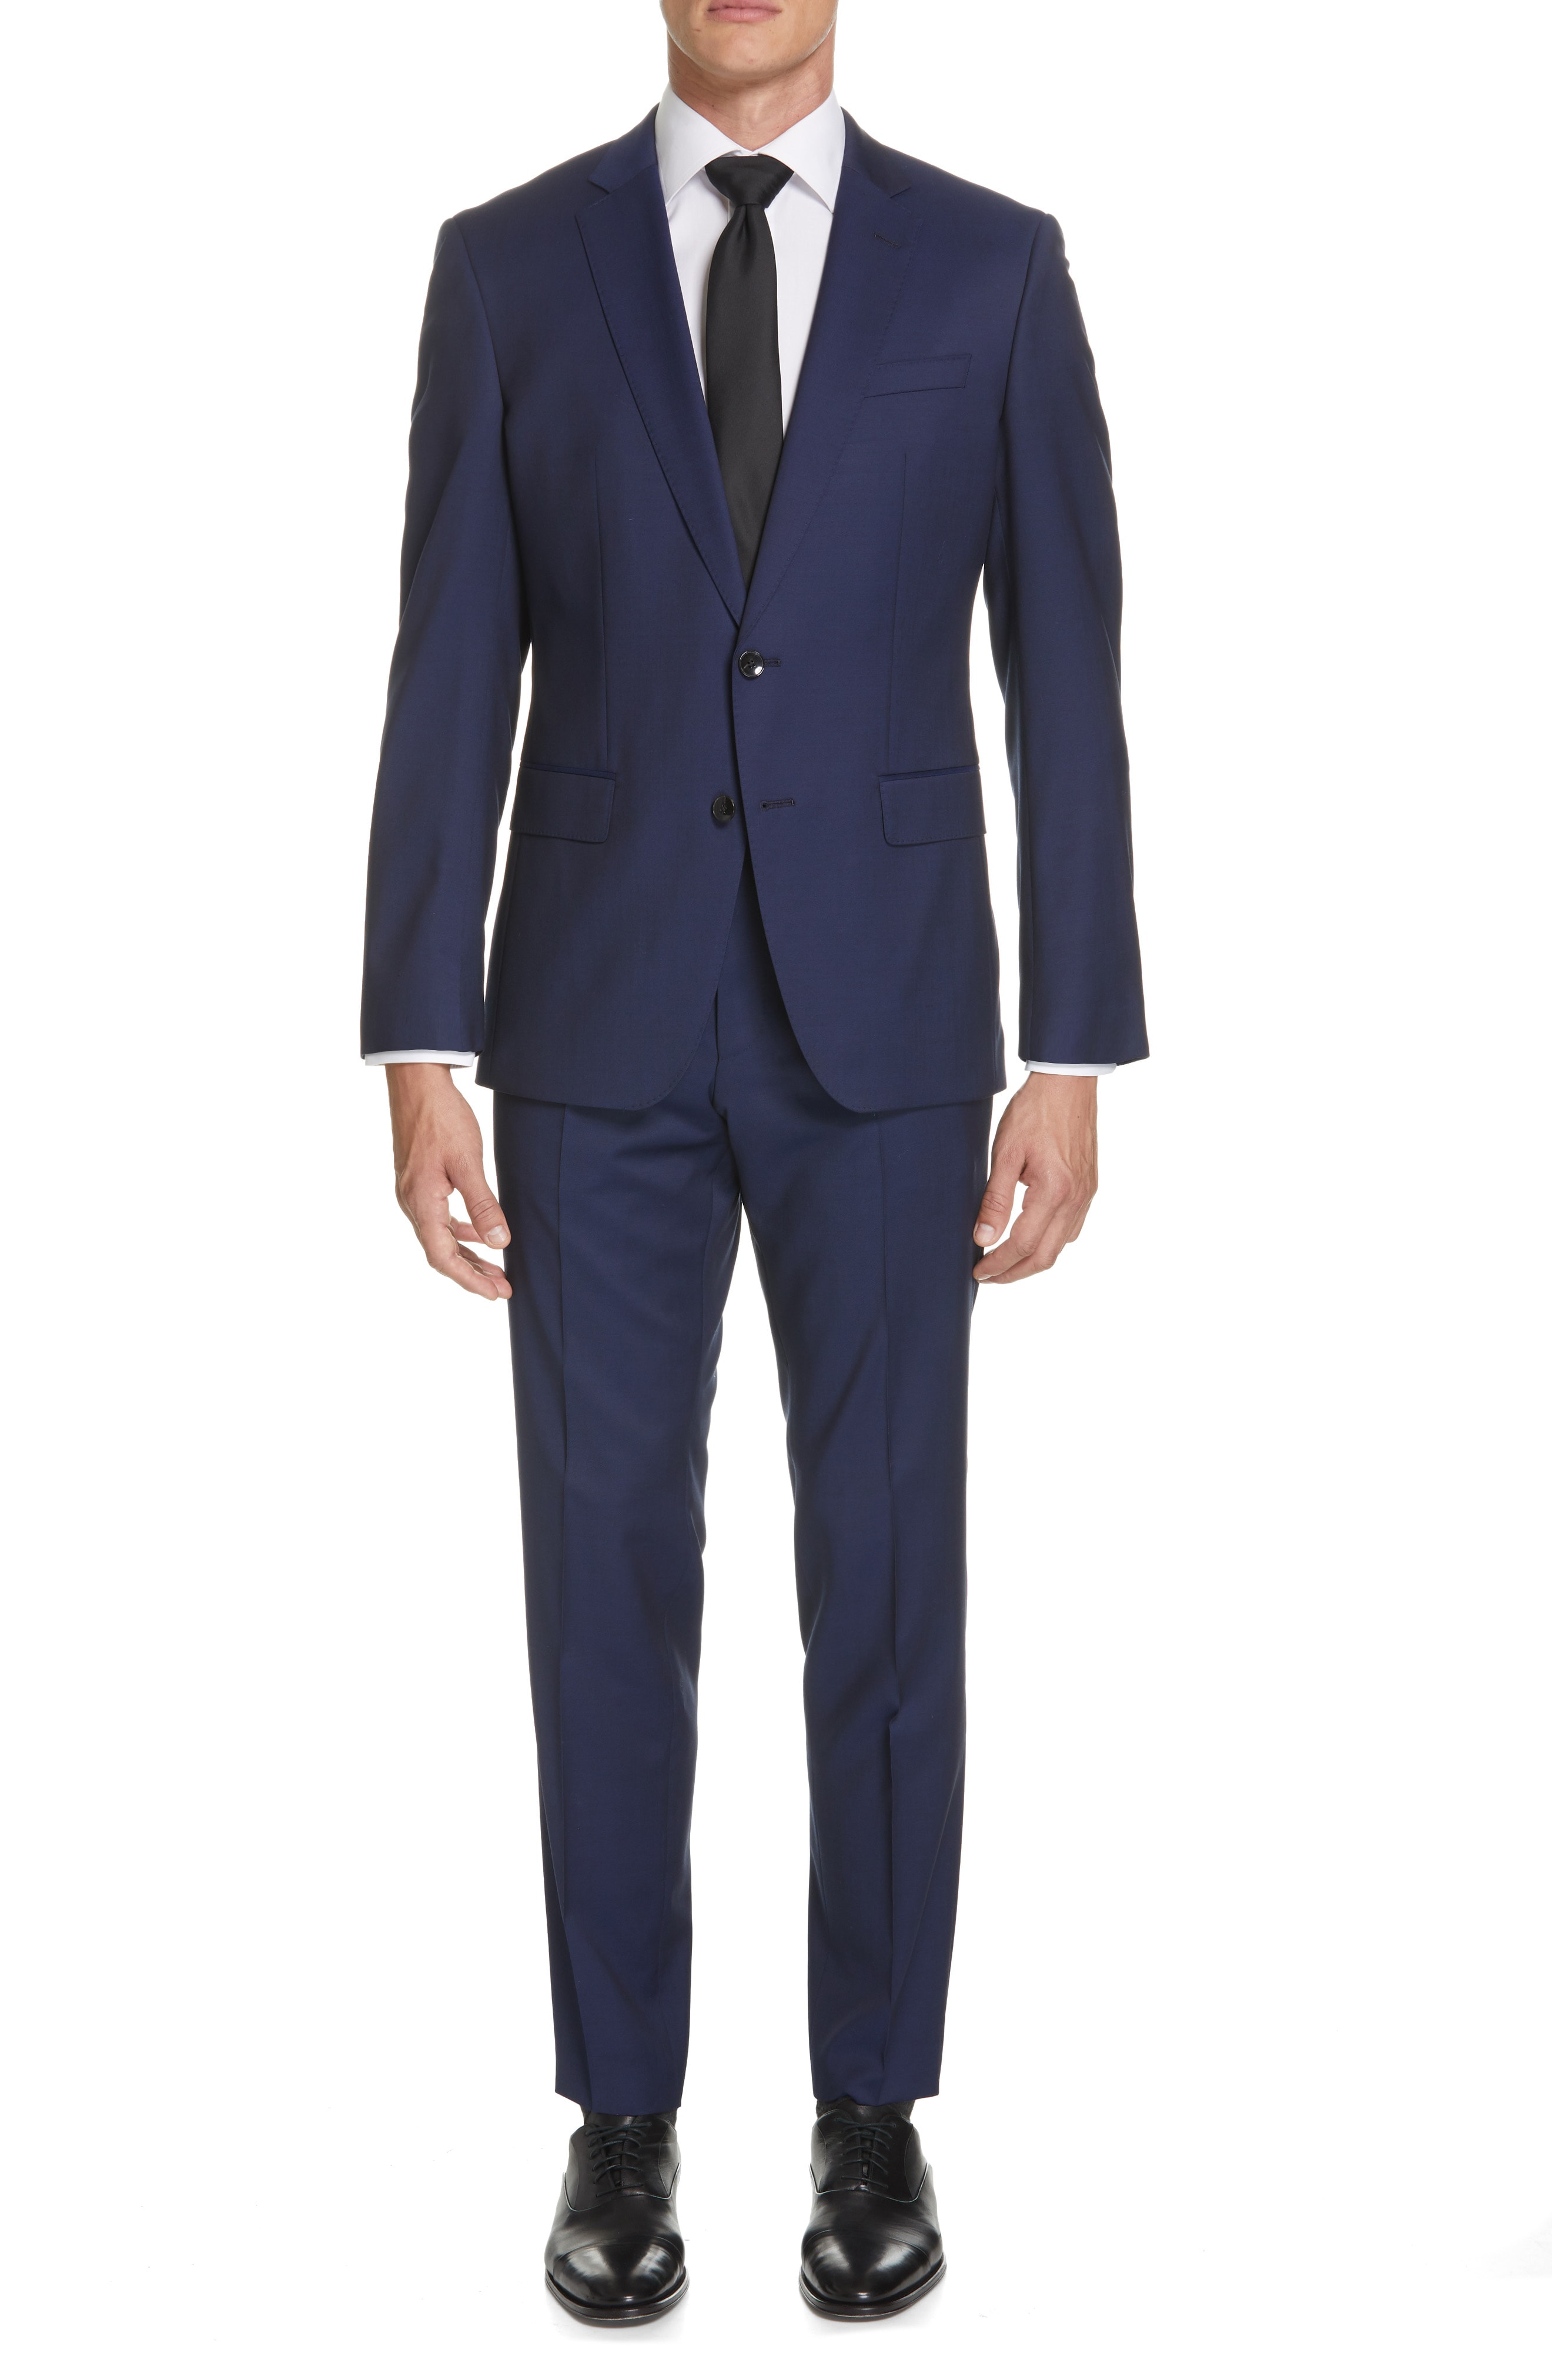 Hugo Boss Men's Suits, Shirts & Jeans | Nordstrom